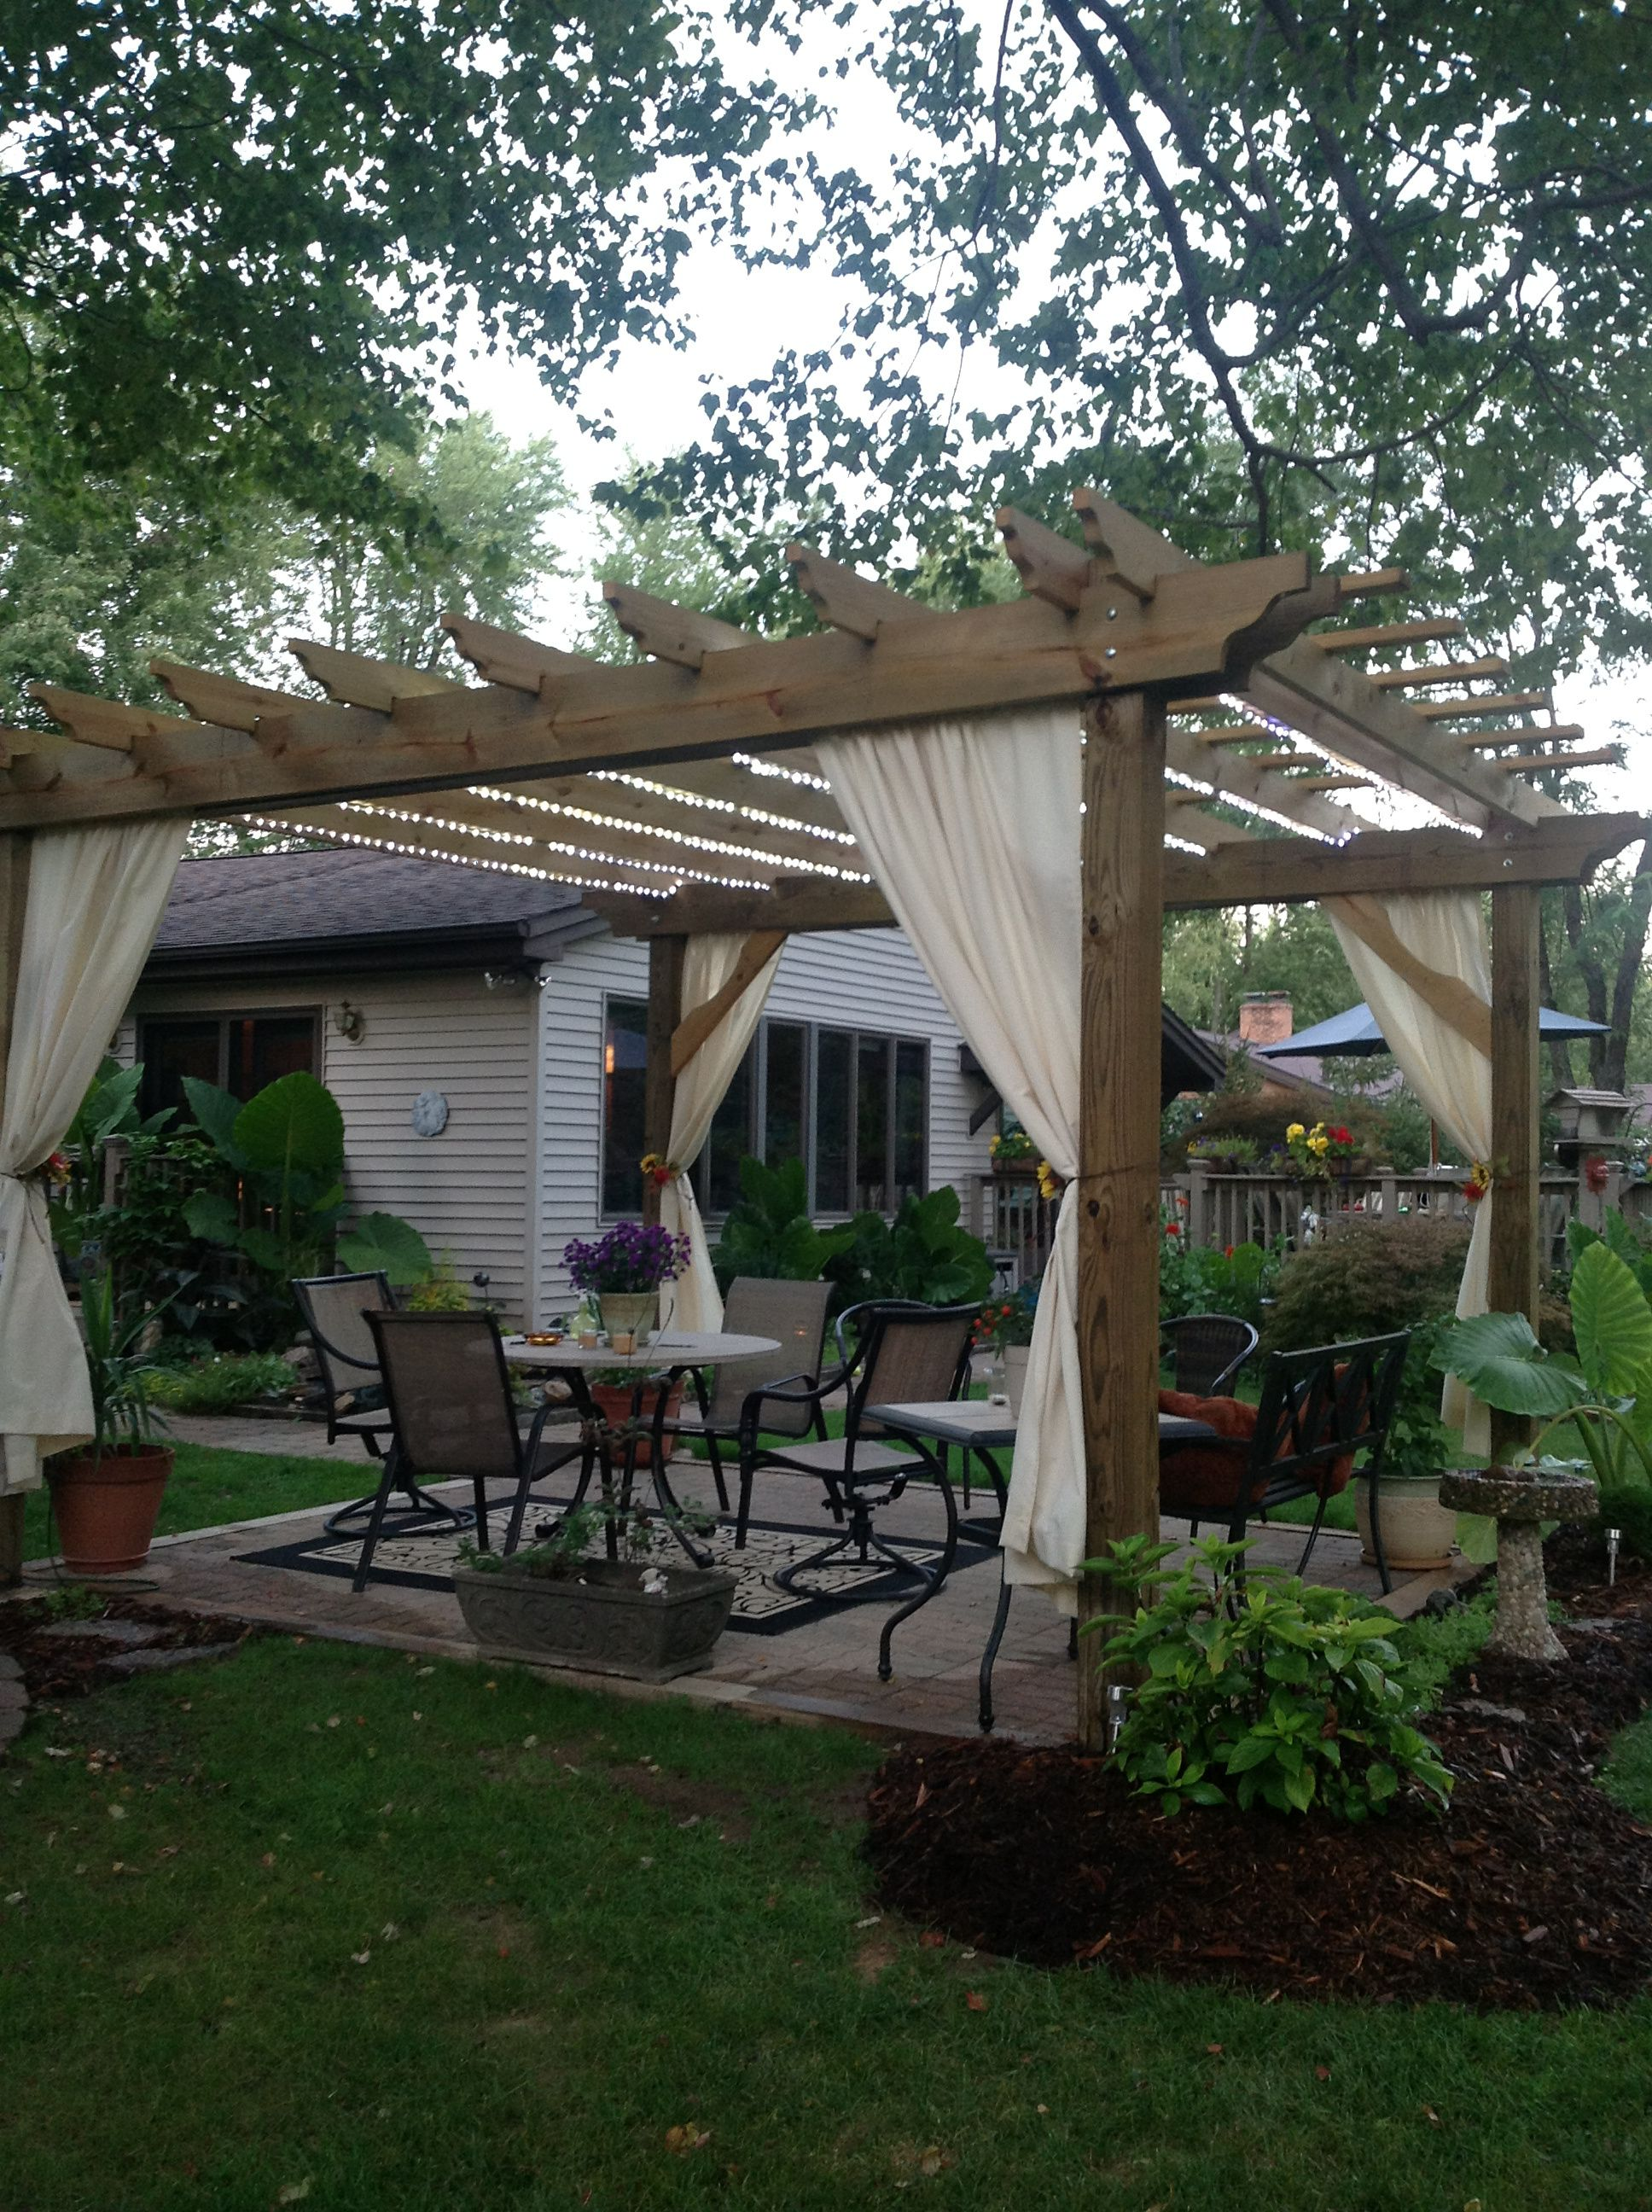 creating your own outdoor paradise - building a pergola to enjoy, Gartengerate ideen